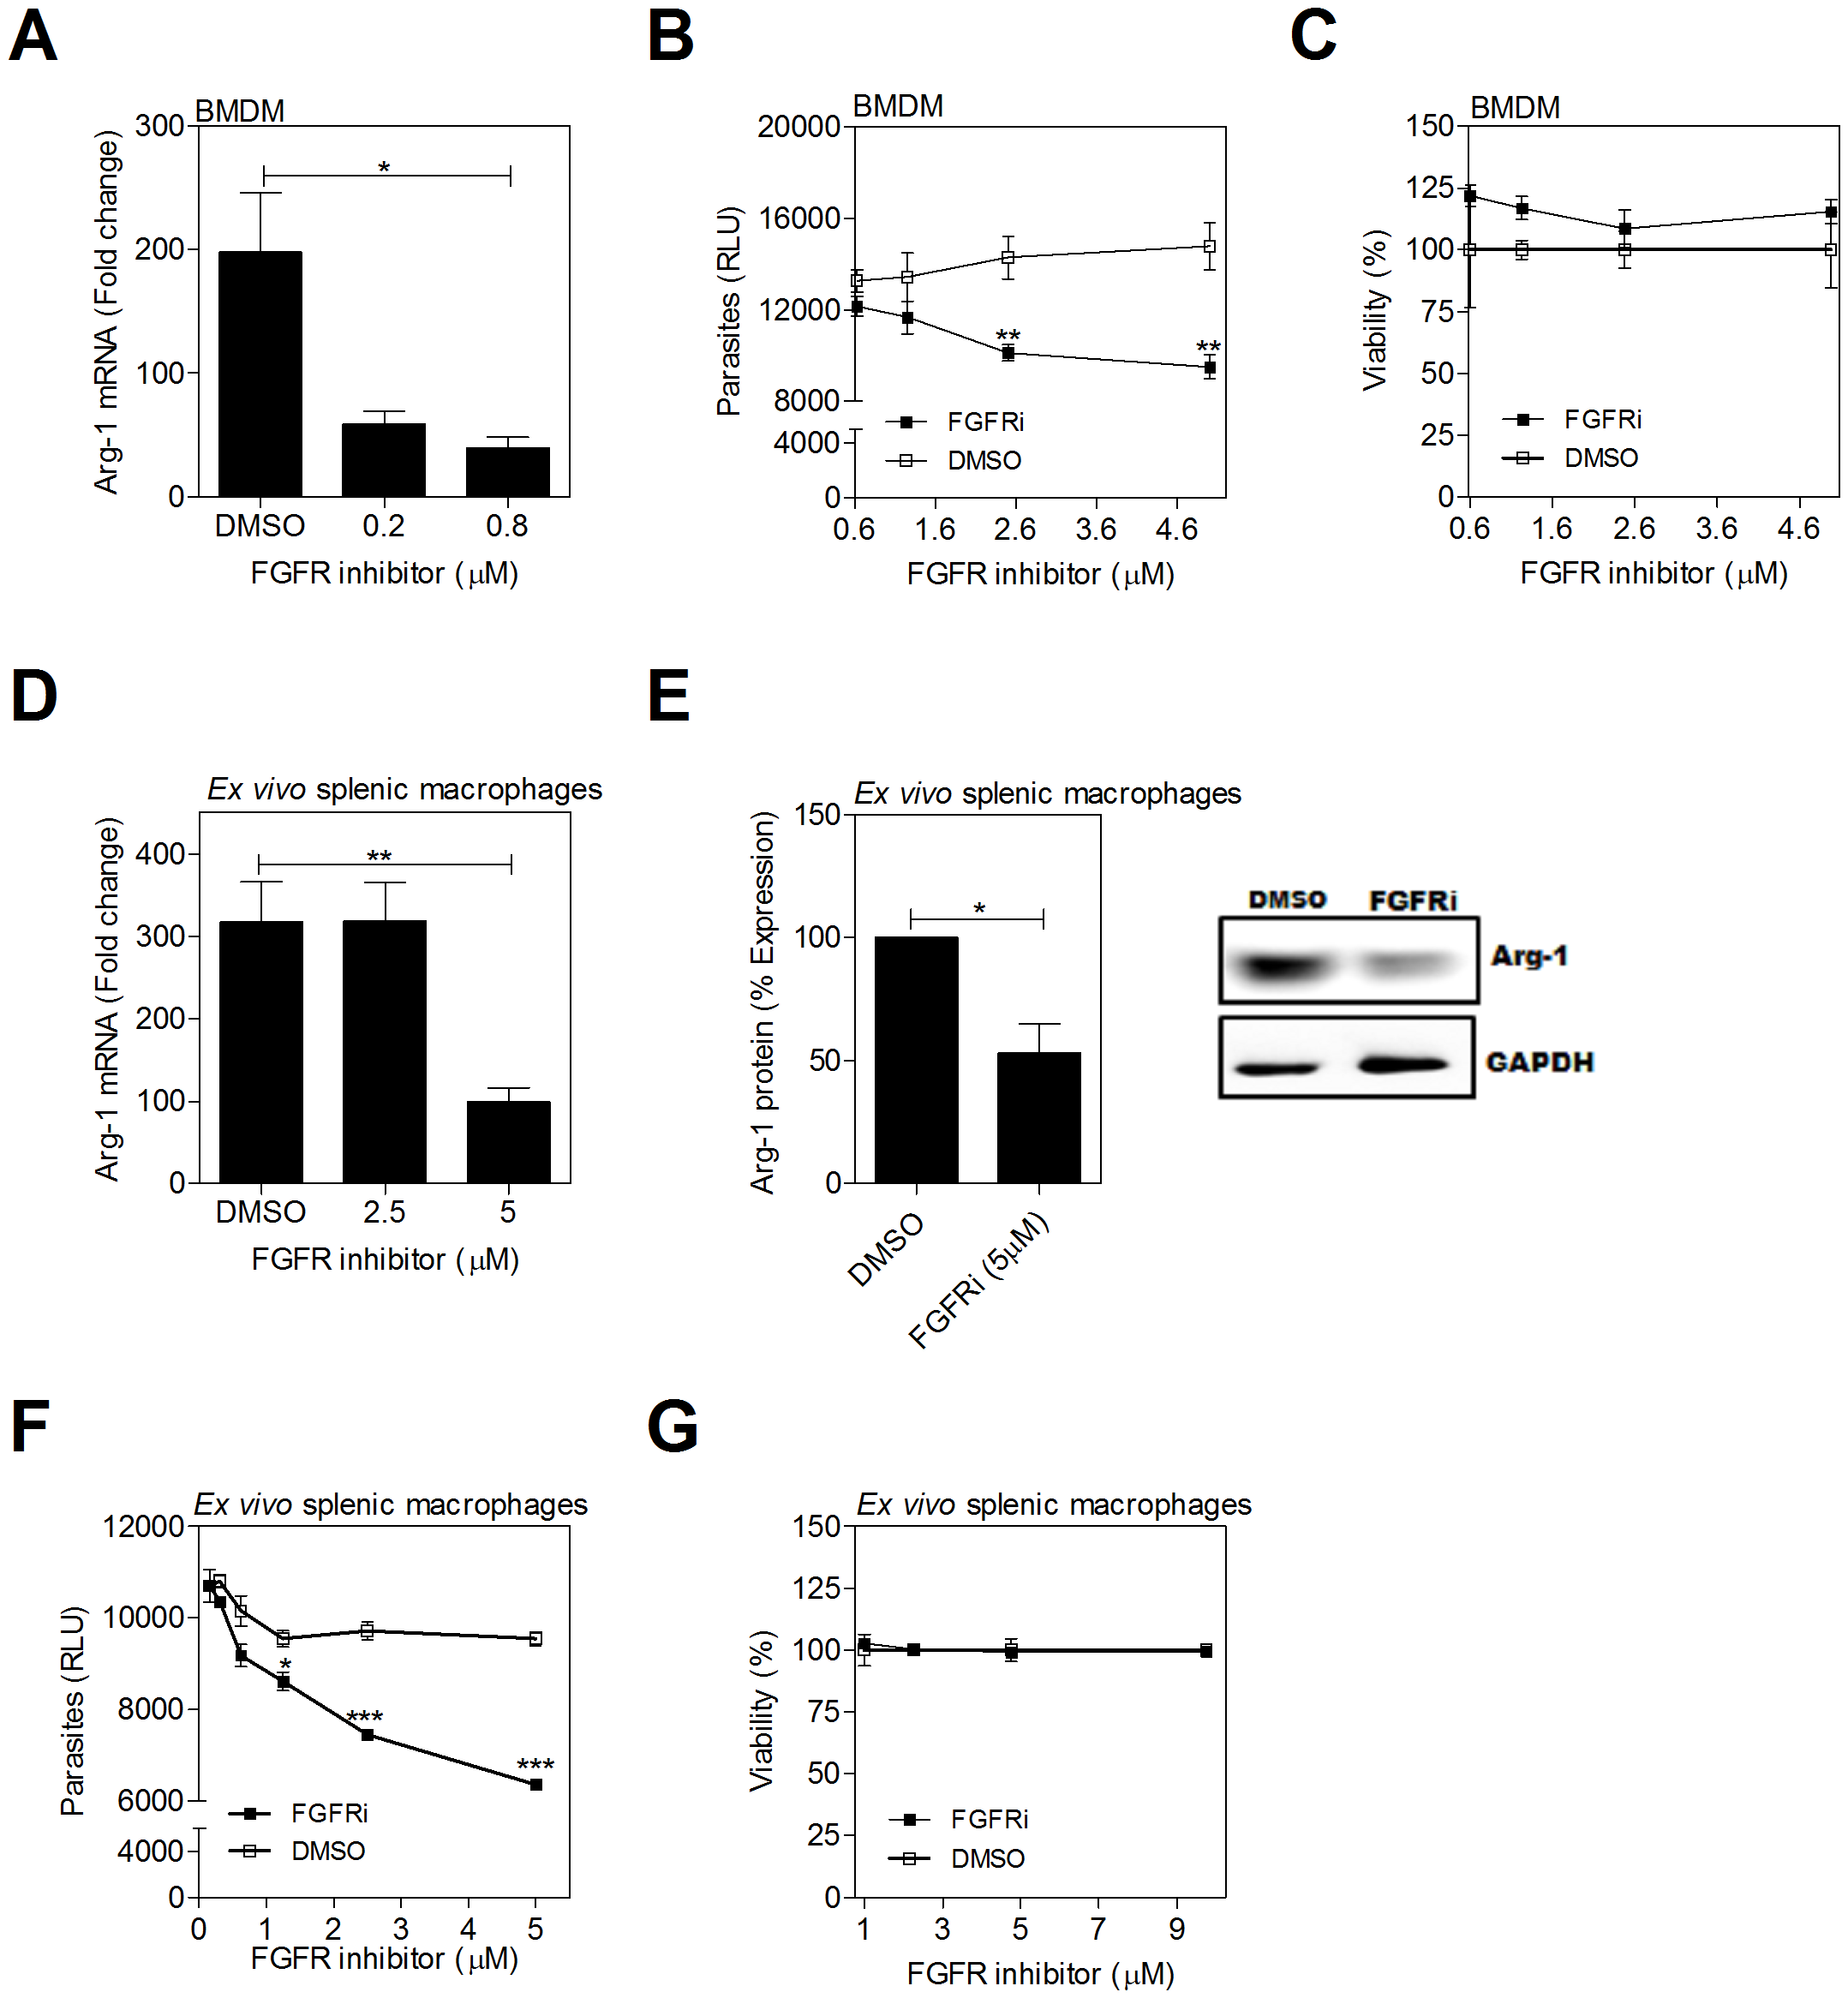 Inhibition of FGFR signaling decreases arg1 expression and parasite burden in <i>L. donovani</i> infected macrophages.